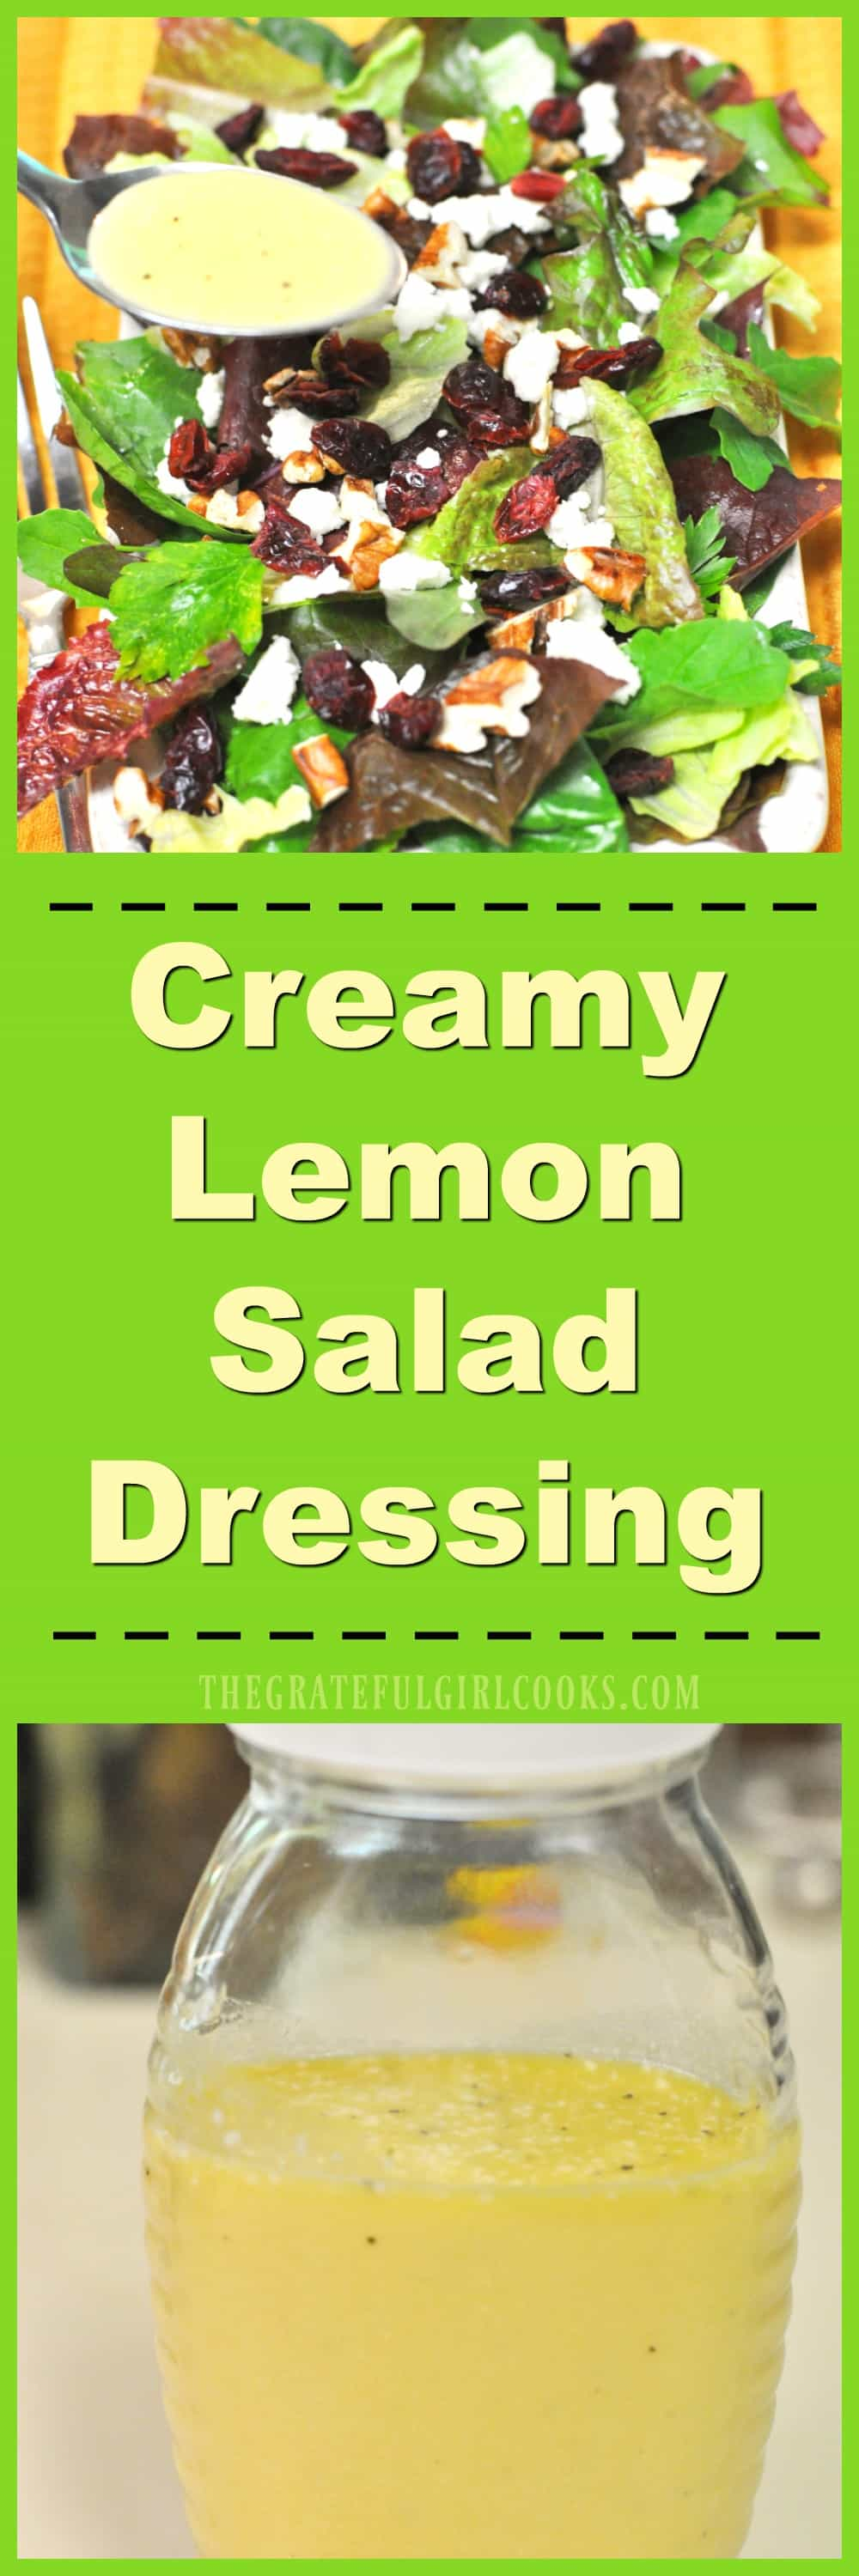 Creamy Lemon Salad Dressing / The Grateful Girl Cooks! This delicious, creamy lemon salad dressing is easy to make from scratch in a couple minutes, withonly a few pantry ingredients!